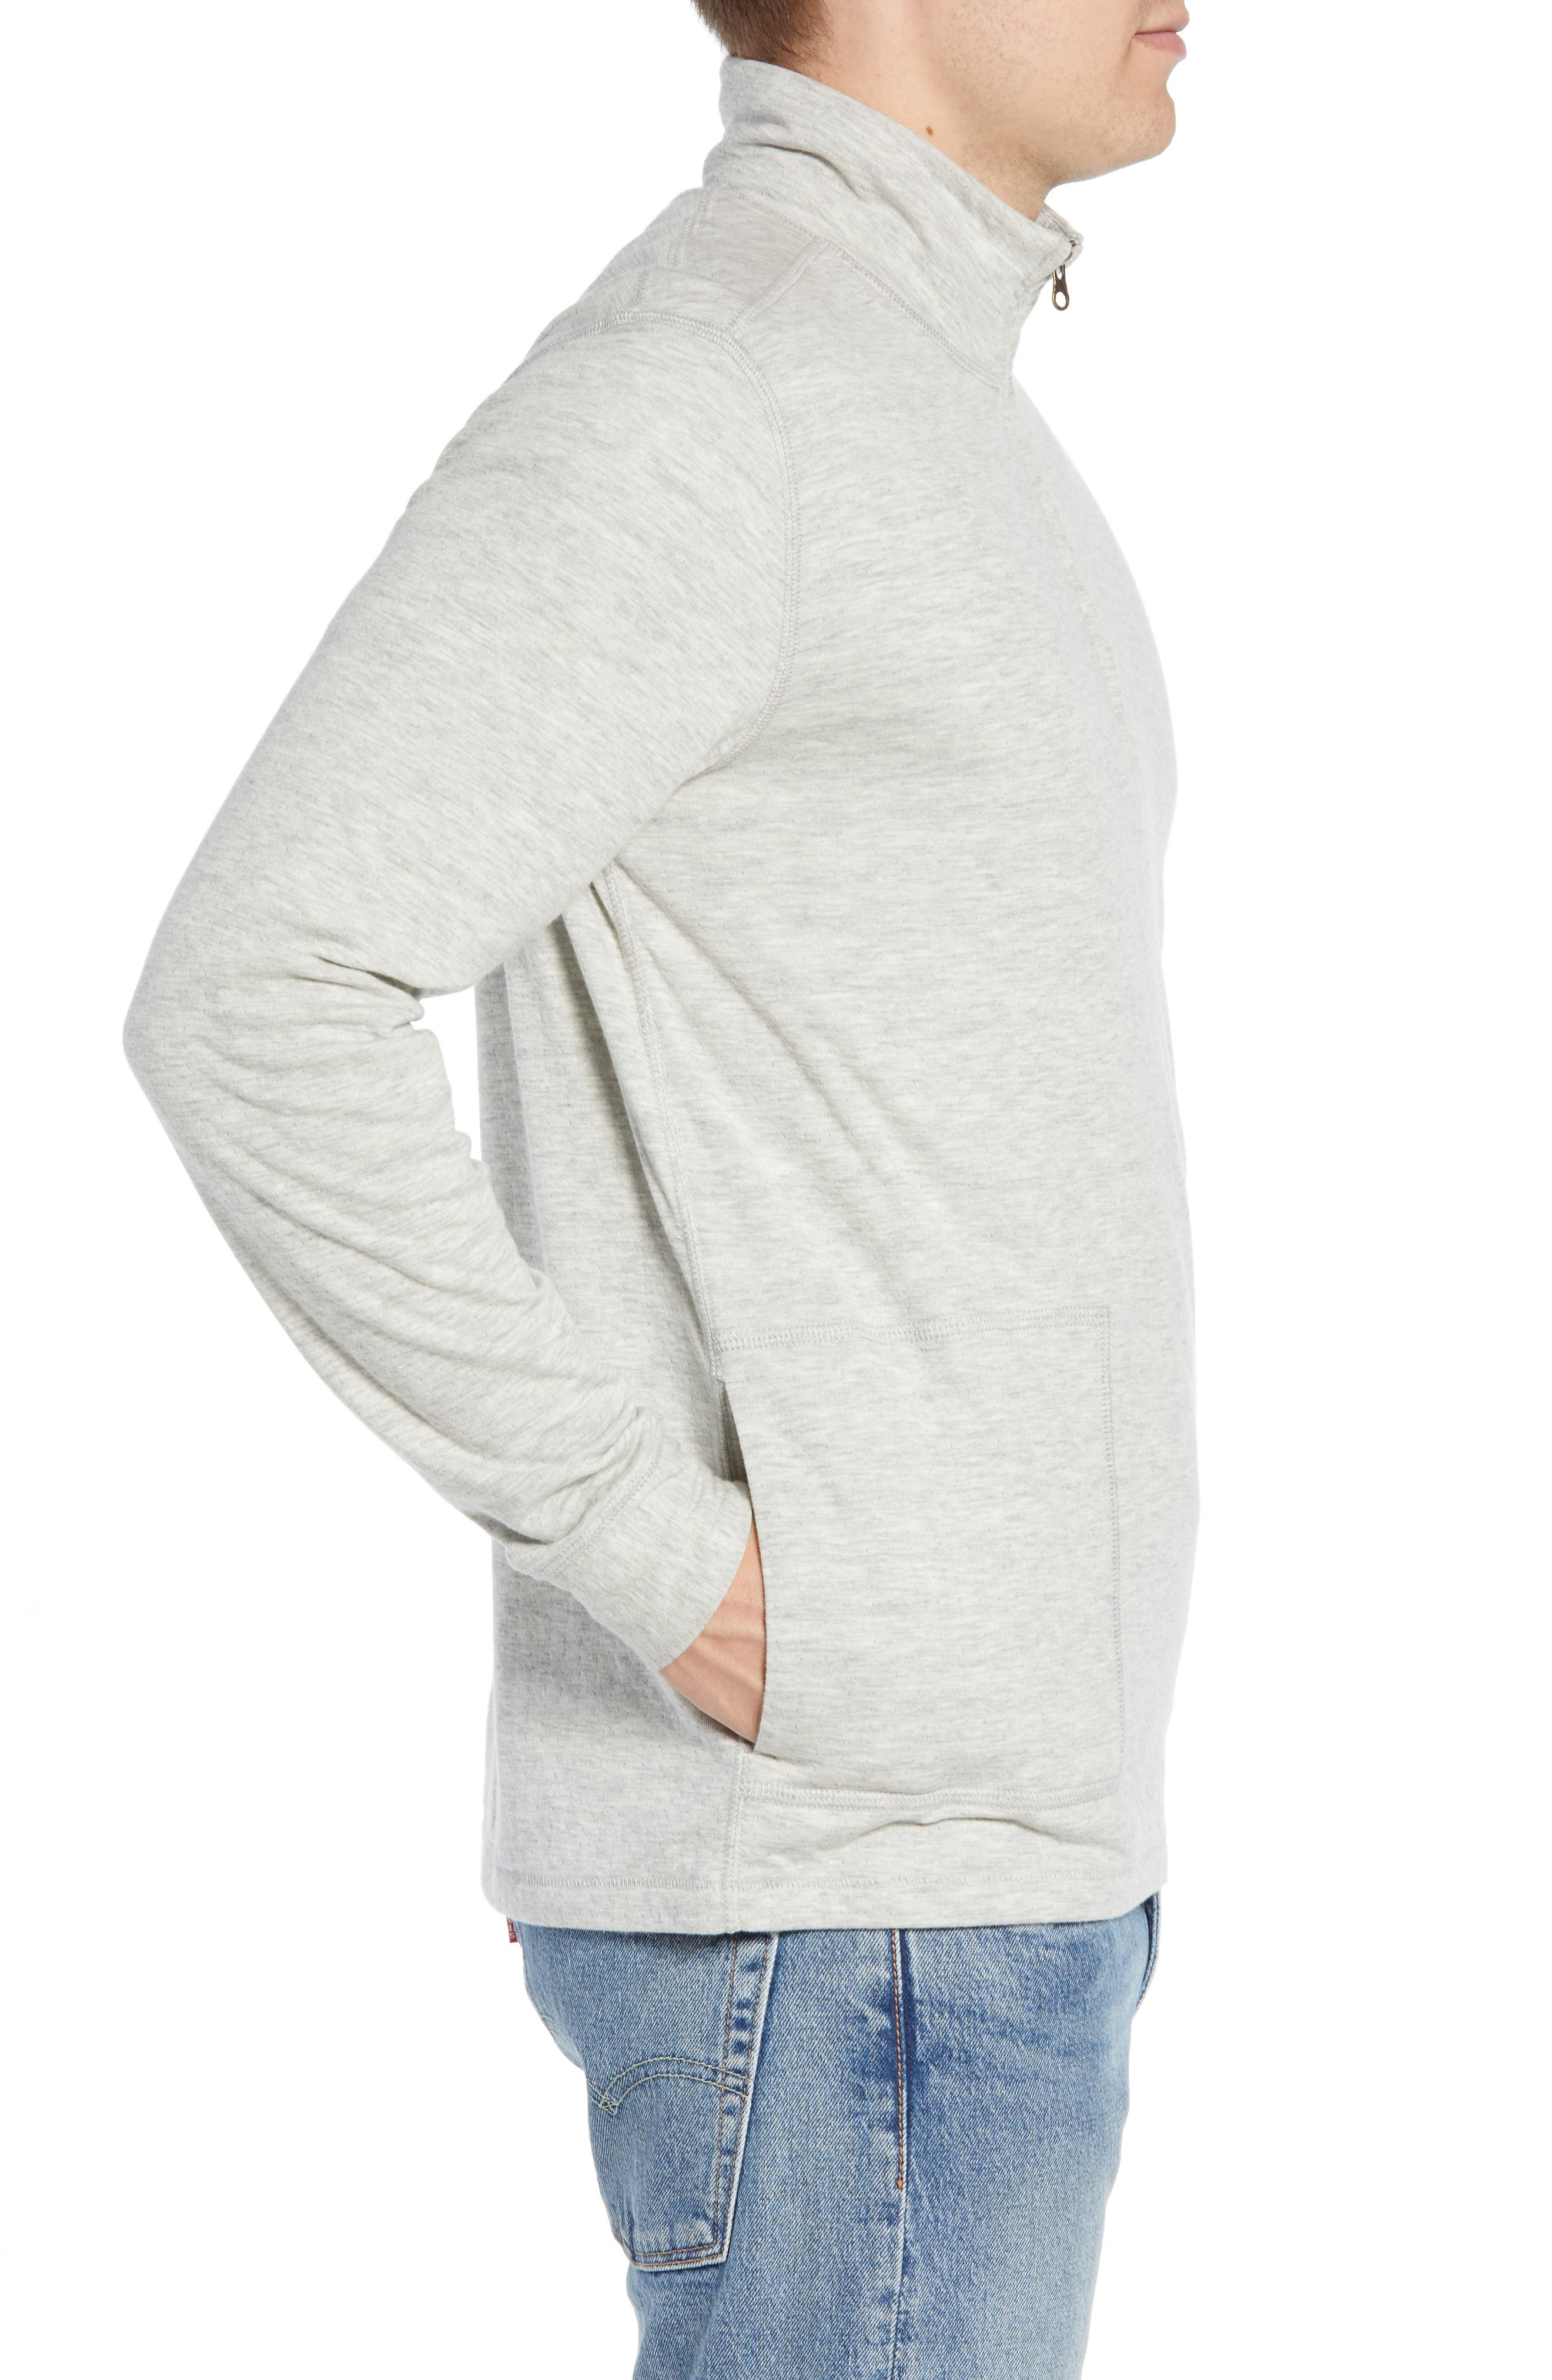 Charles Regular Fit Half Zip Sweater,                             Alternate thumbnail 3, color,                             074